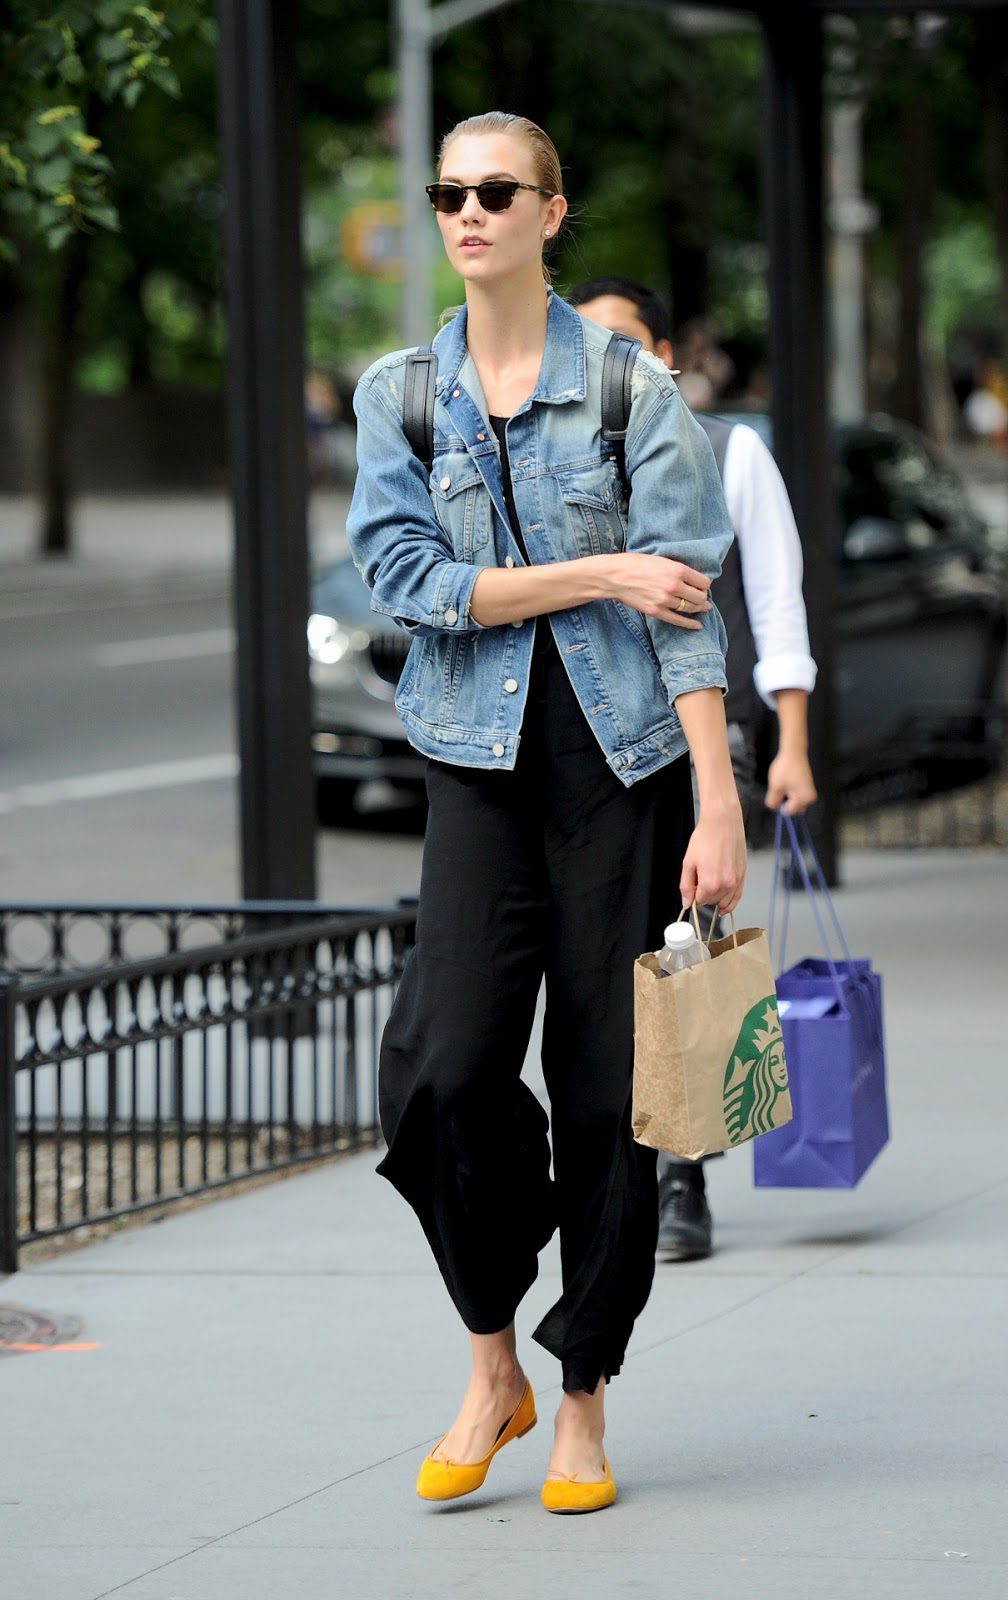 Karlie Kloss Does Casual Street Style in NYC